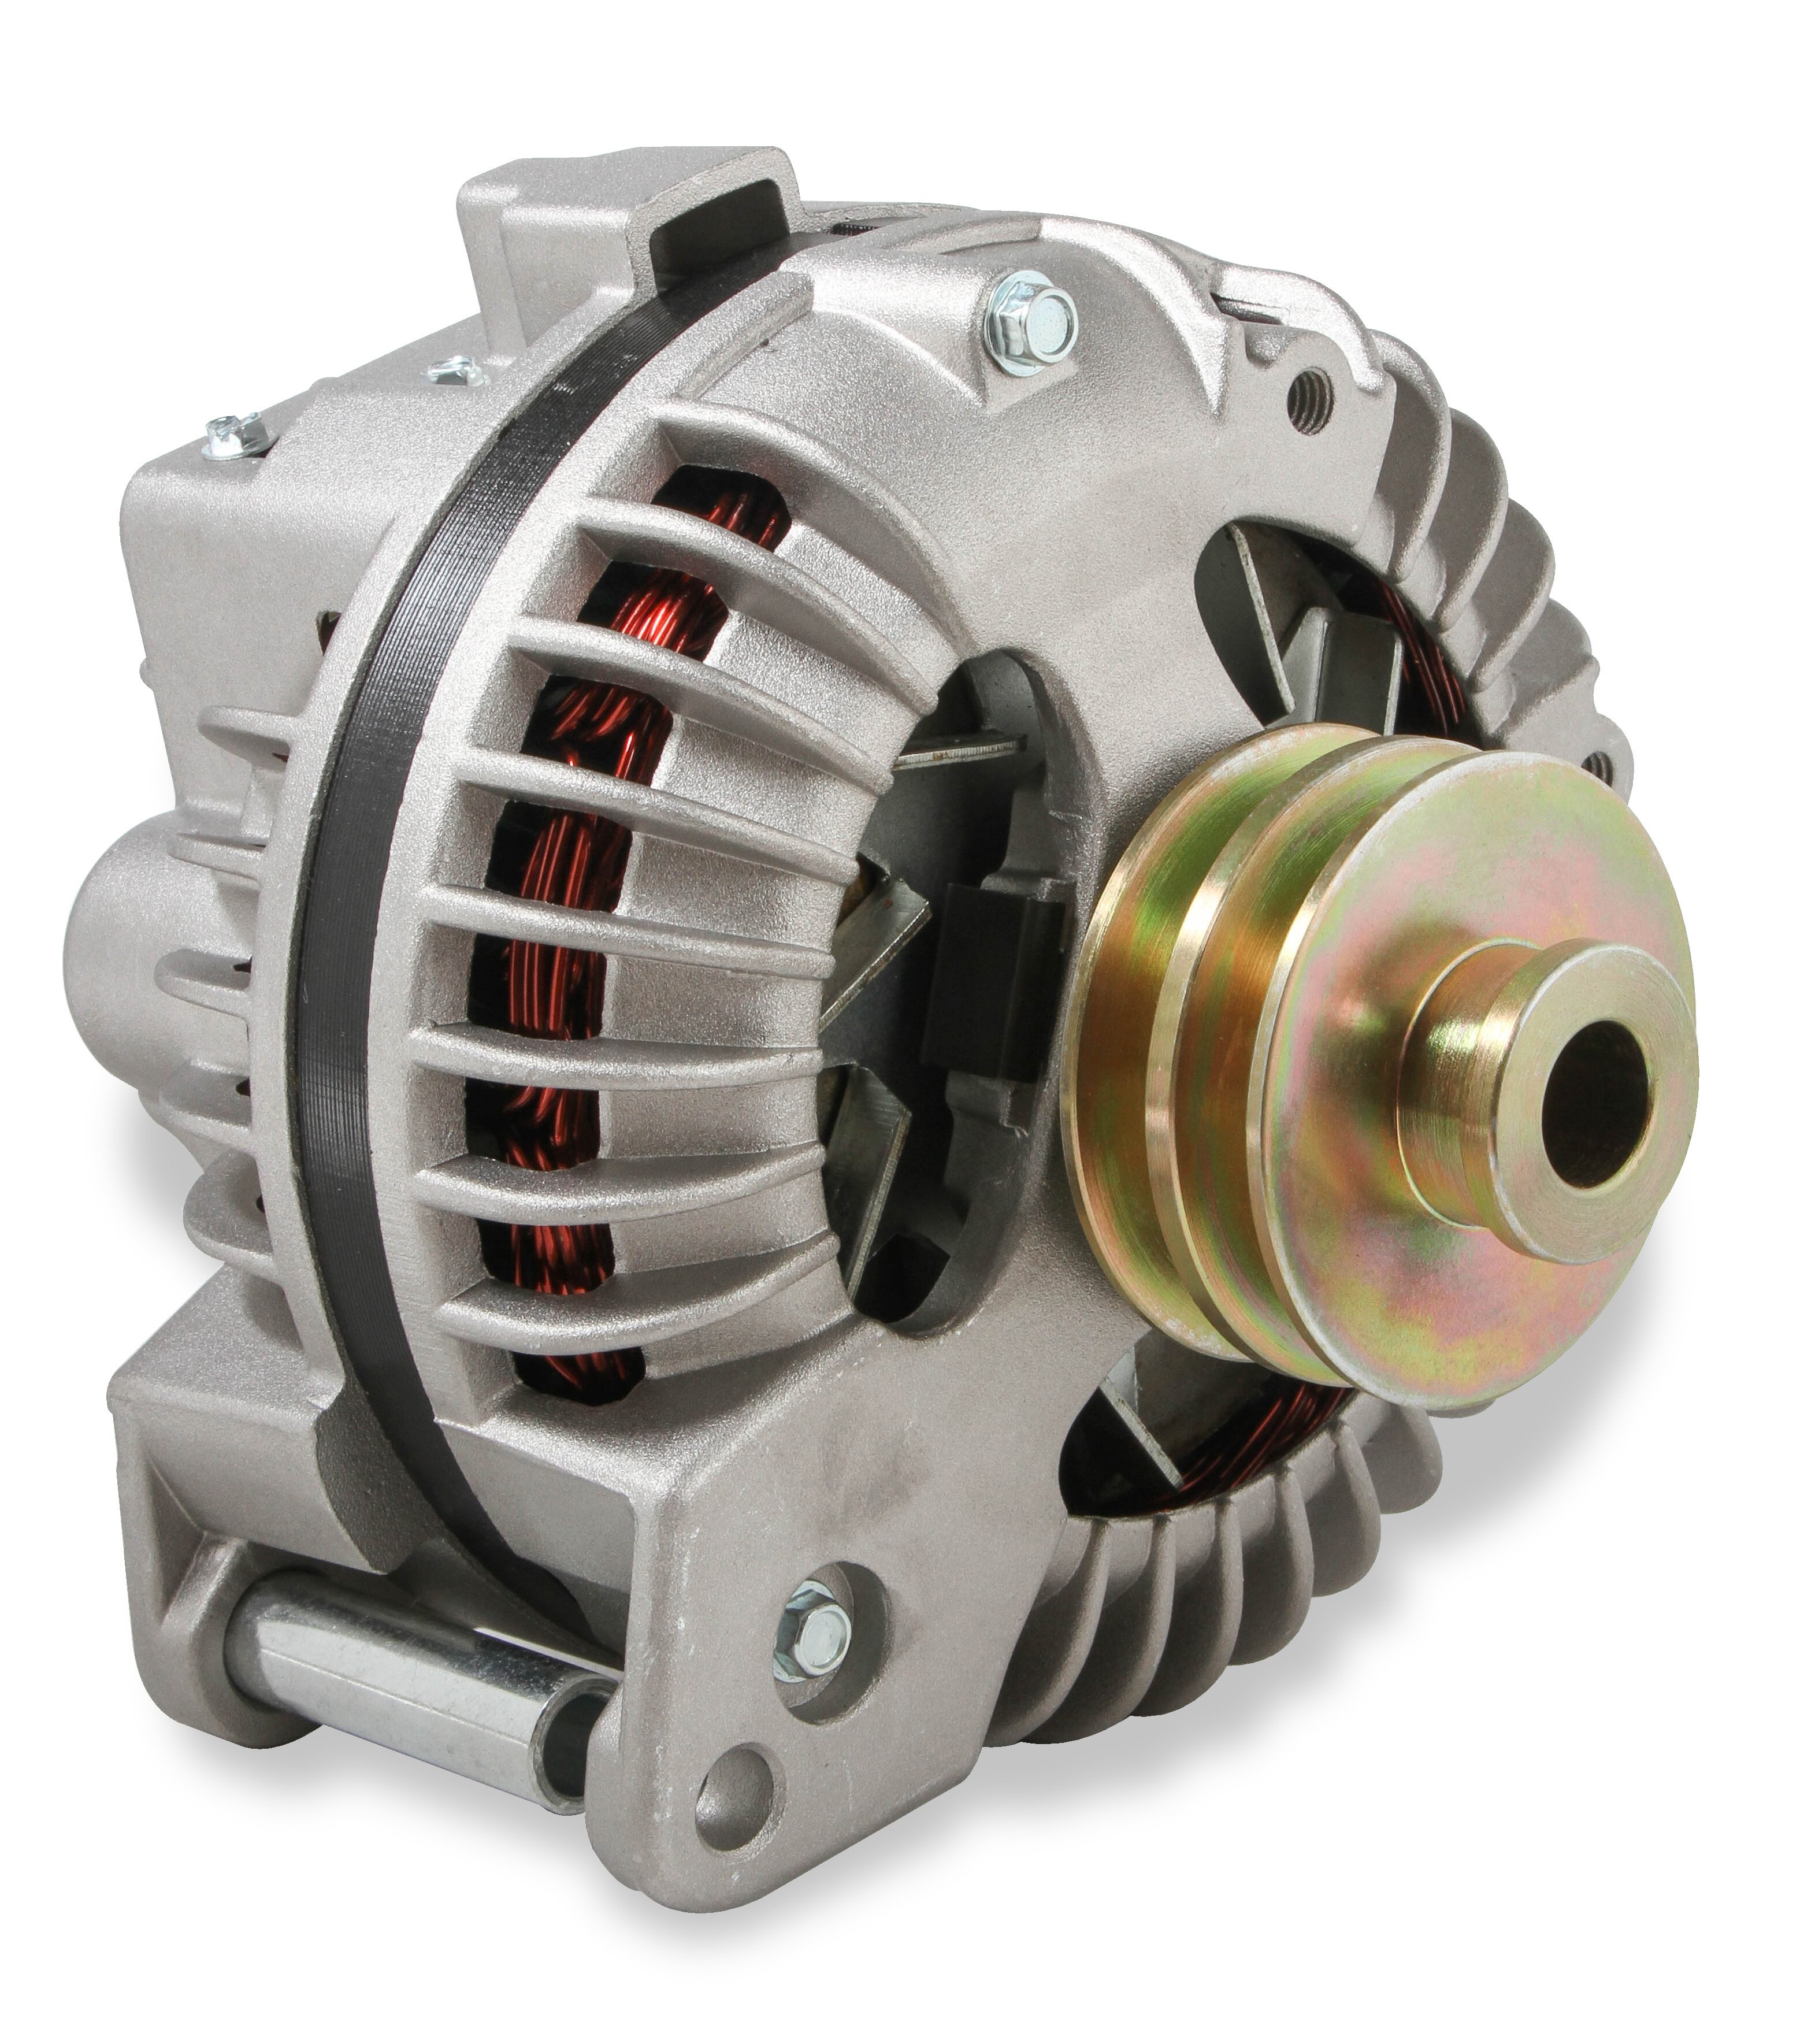 51261NG - Alternator - Chrysler 1960-88 - 100 AMP - Natural Finish Image